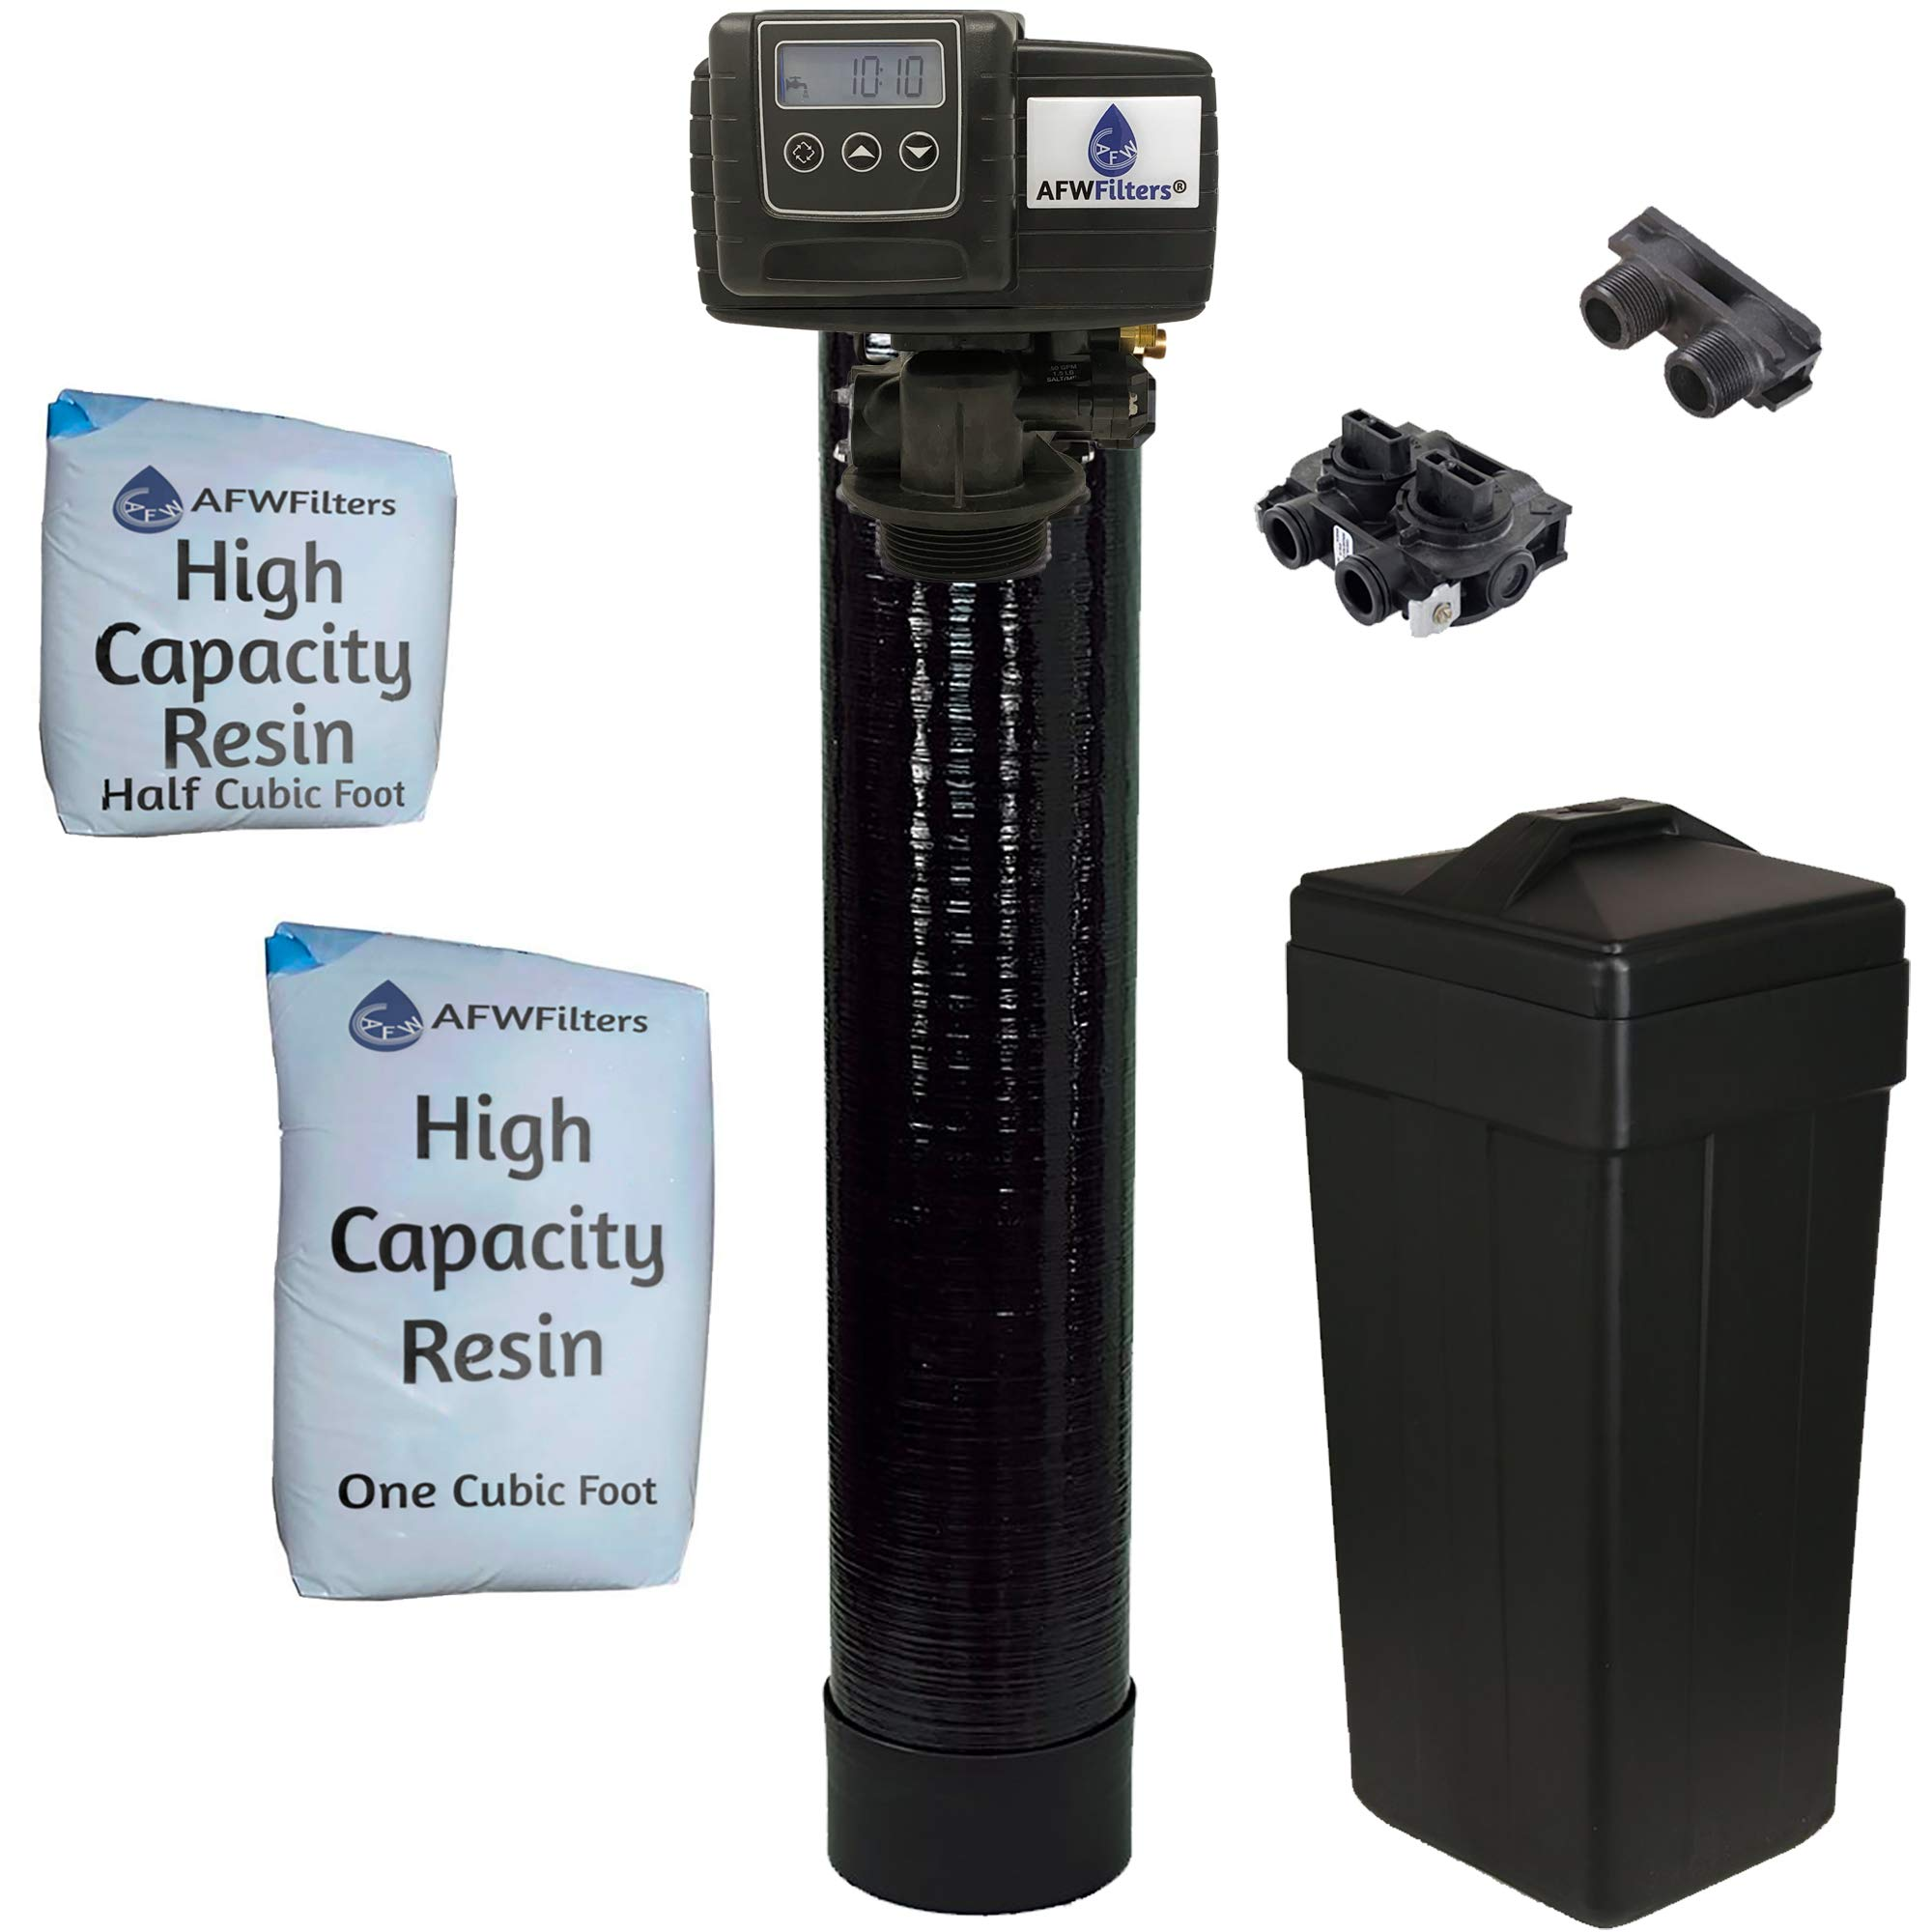 Fleck 5600SXT 48,000 Grain Water Softener Digital SXT Metered Whole House System by AFWFilters